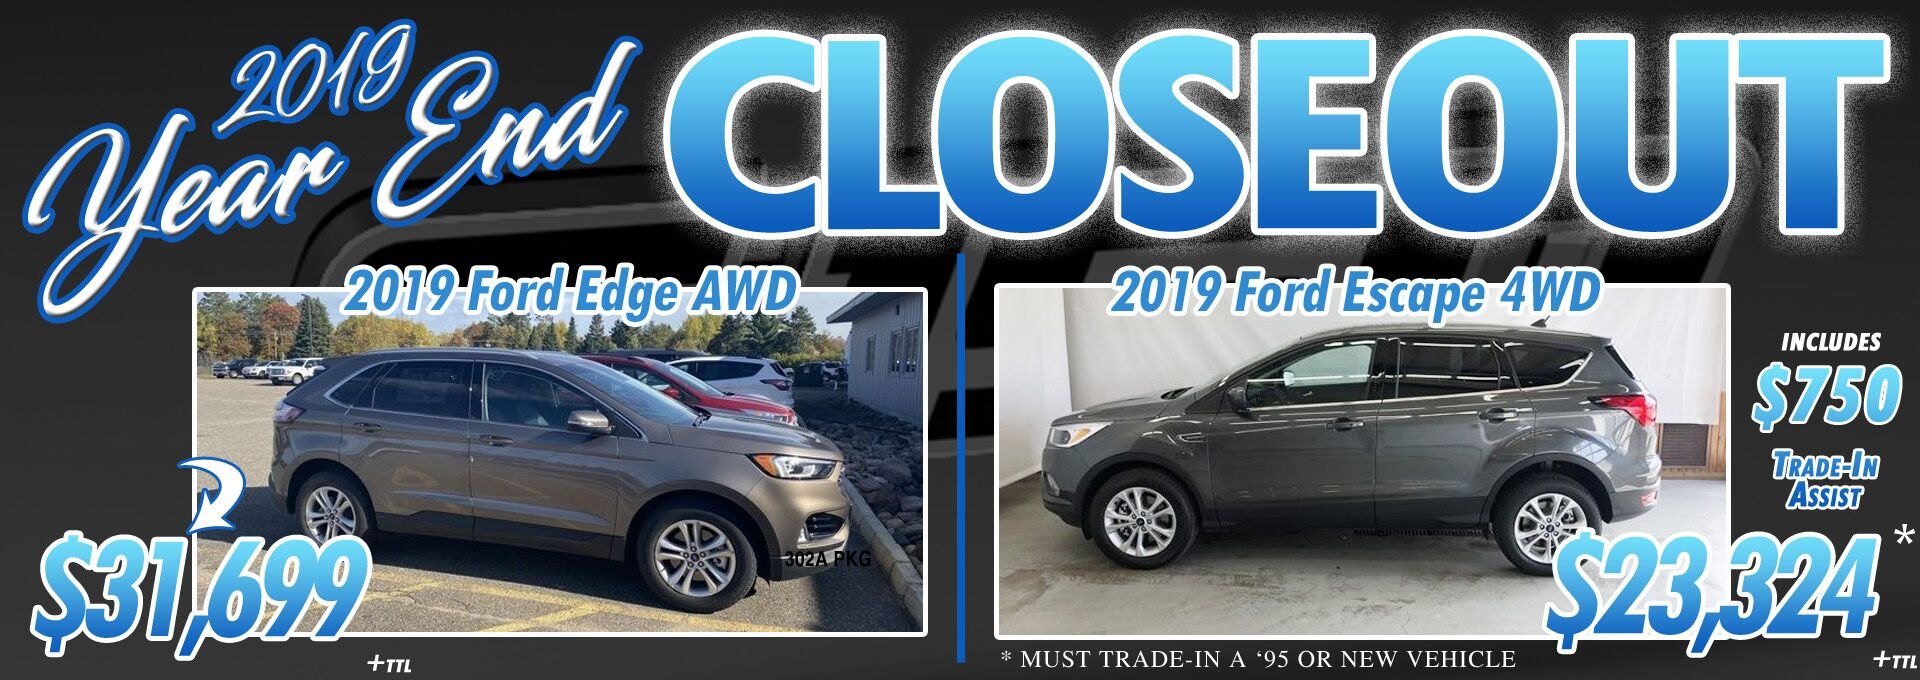 2019 Escape & Edge Closeout